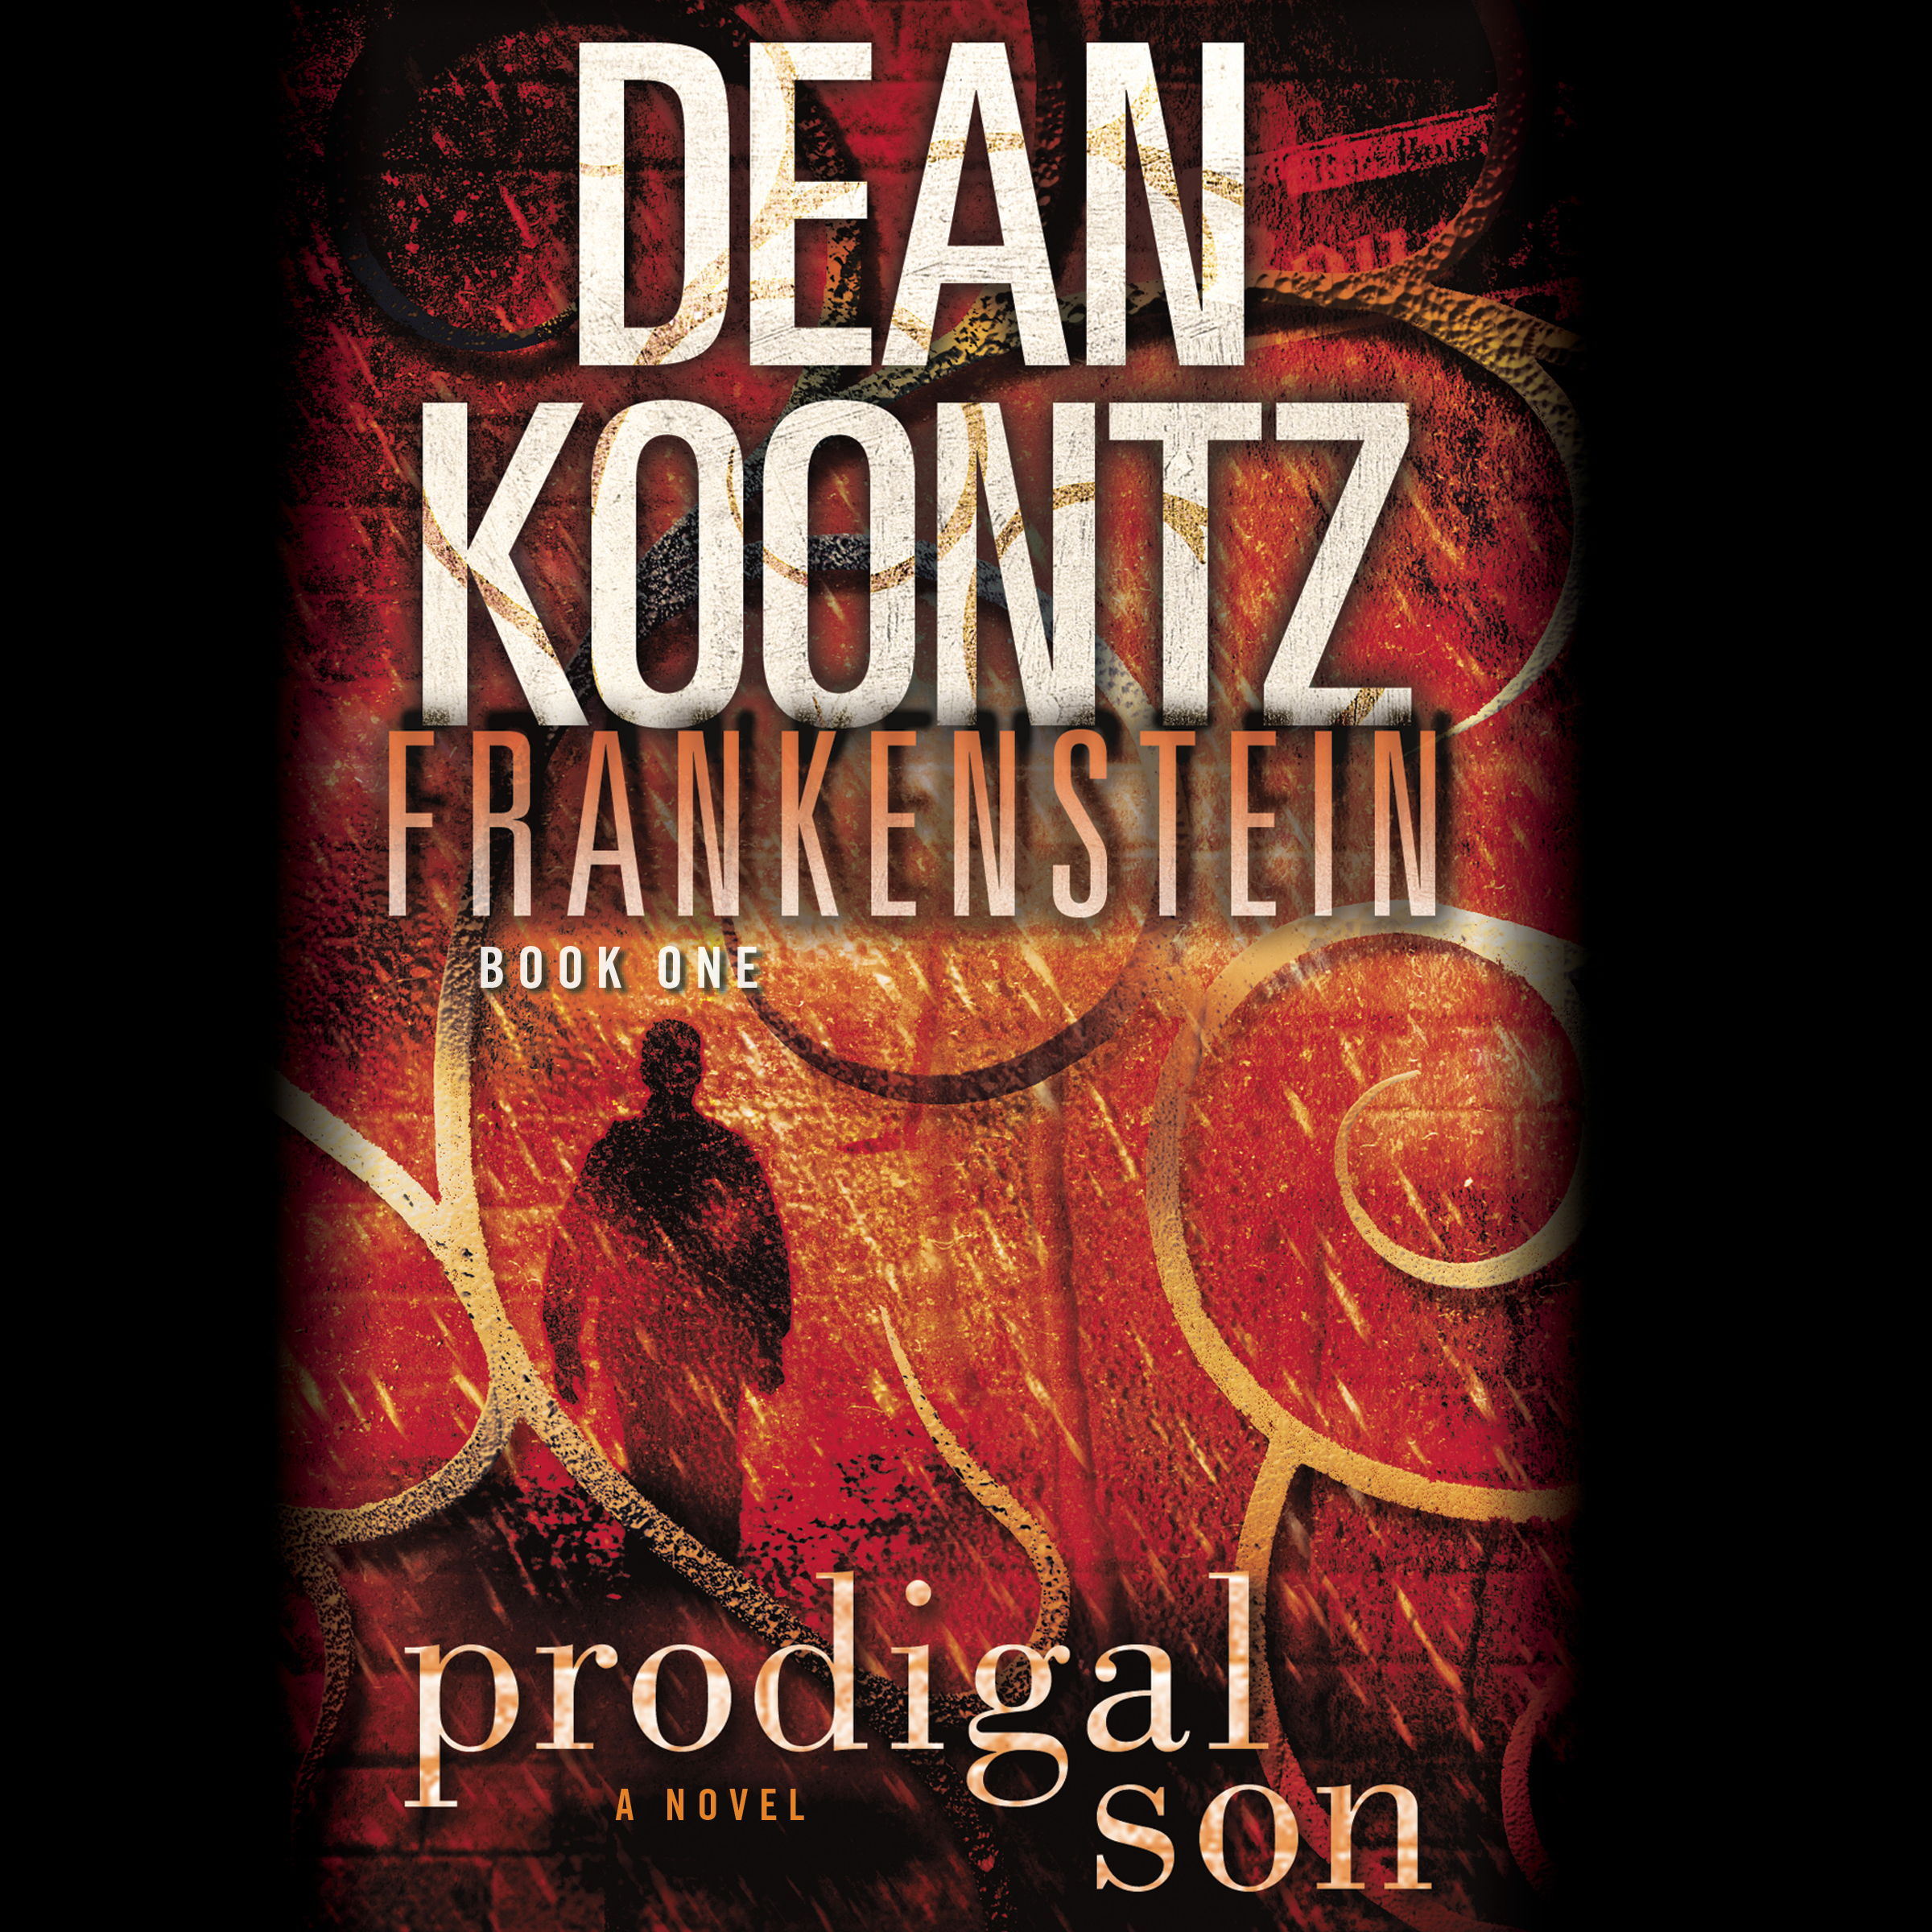 Printable Frankenstein: Prodigal Son Audiobook Cover Art